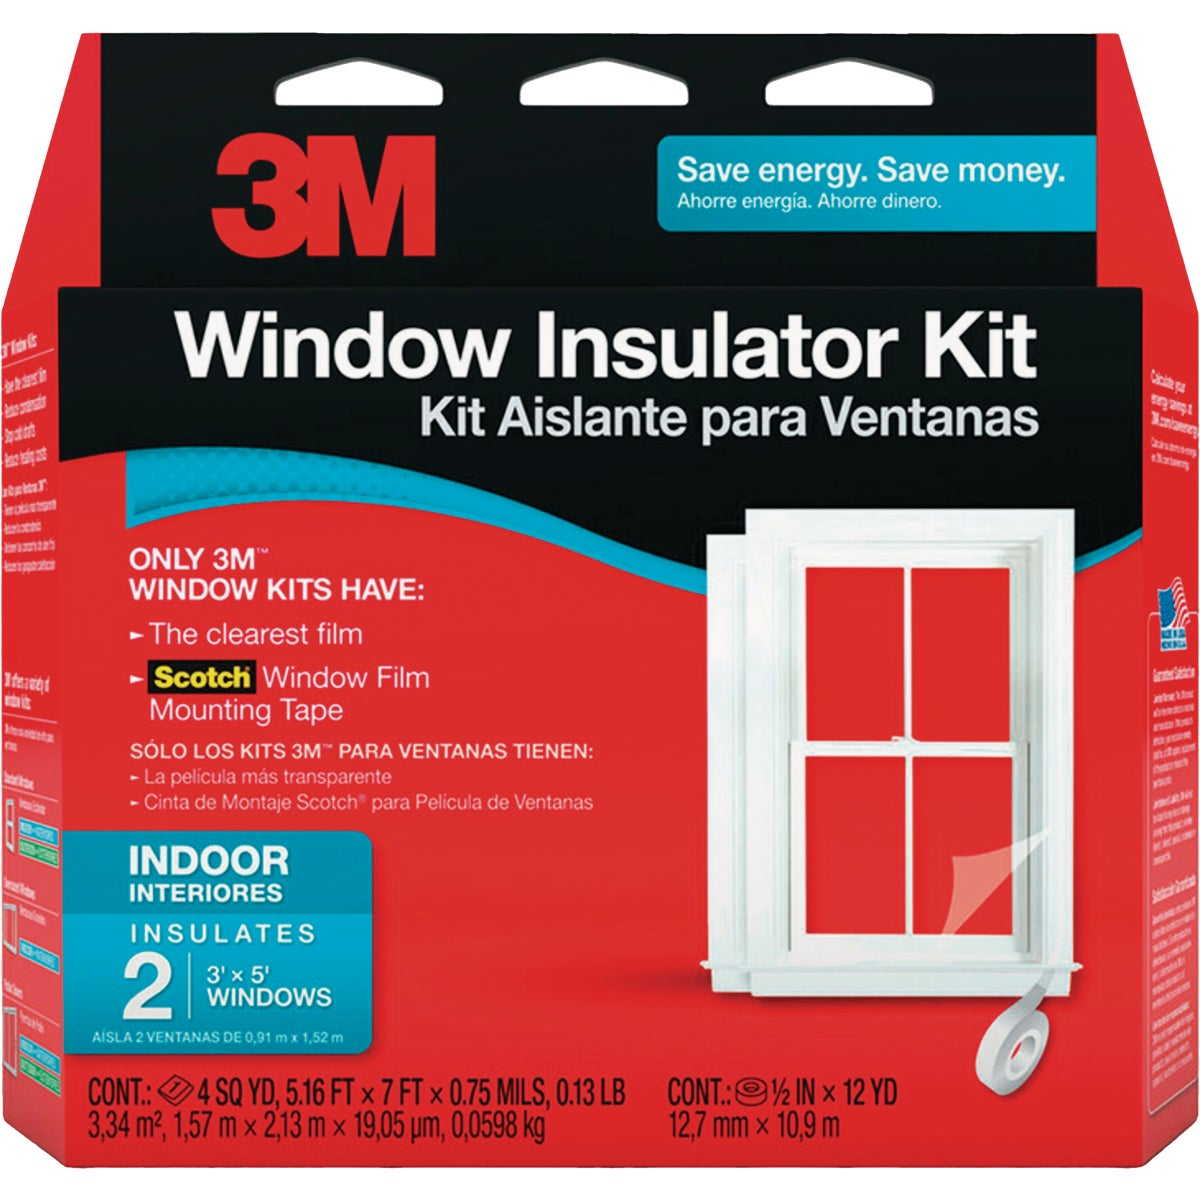 2PK 42X62 WNDW INSUL KIT - 2120W-6 by 3m Co